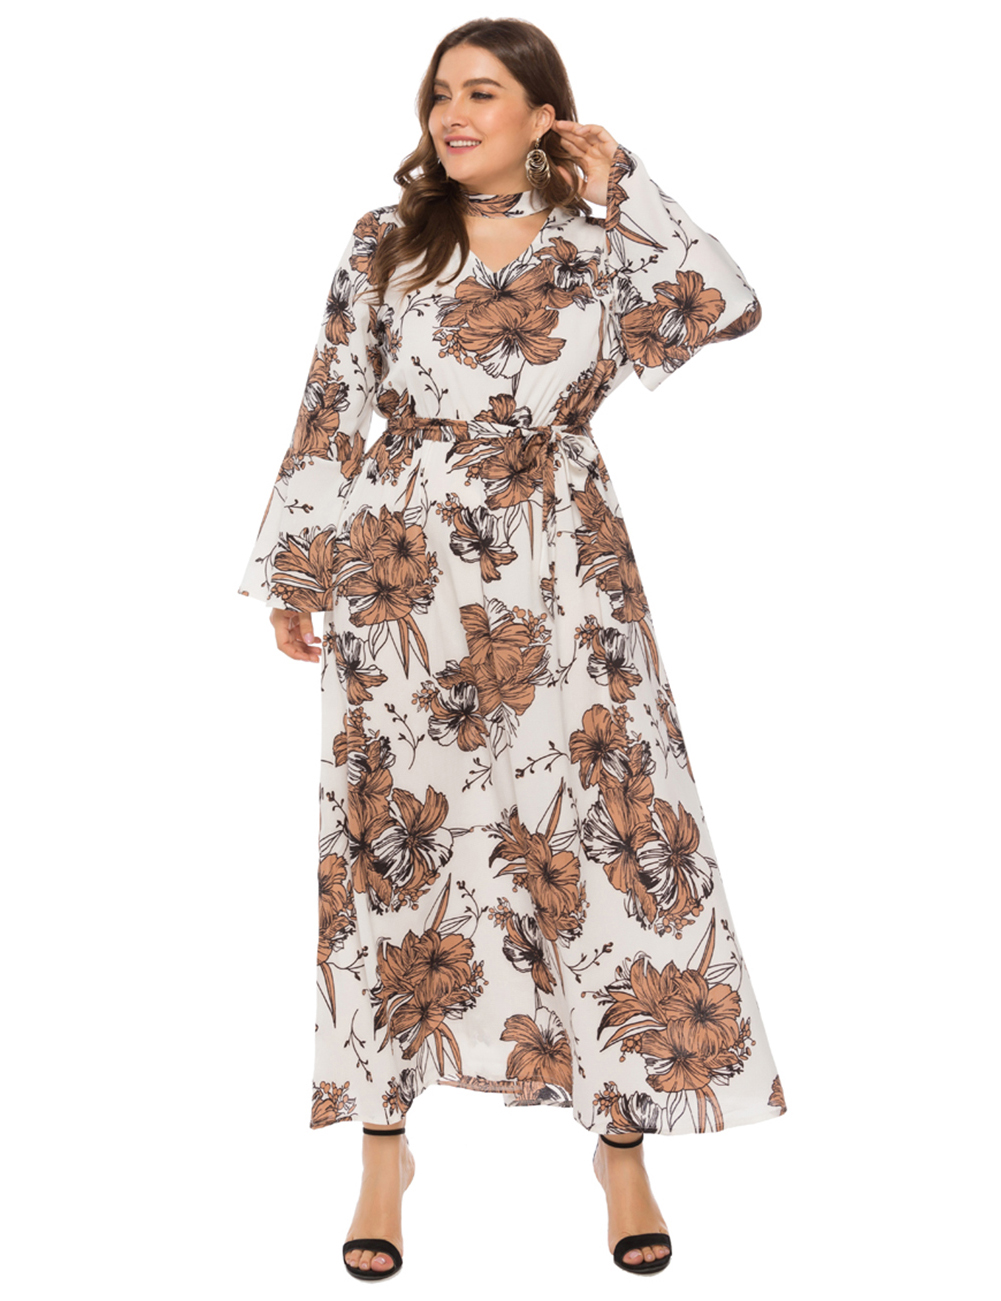 //cdn.affectcloud.com/feelingirldress/upload/imgs/2019-07-15/VZ191148-WH1/VZ191148-WH1-3.jpg